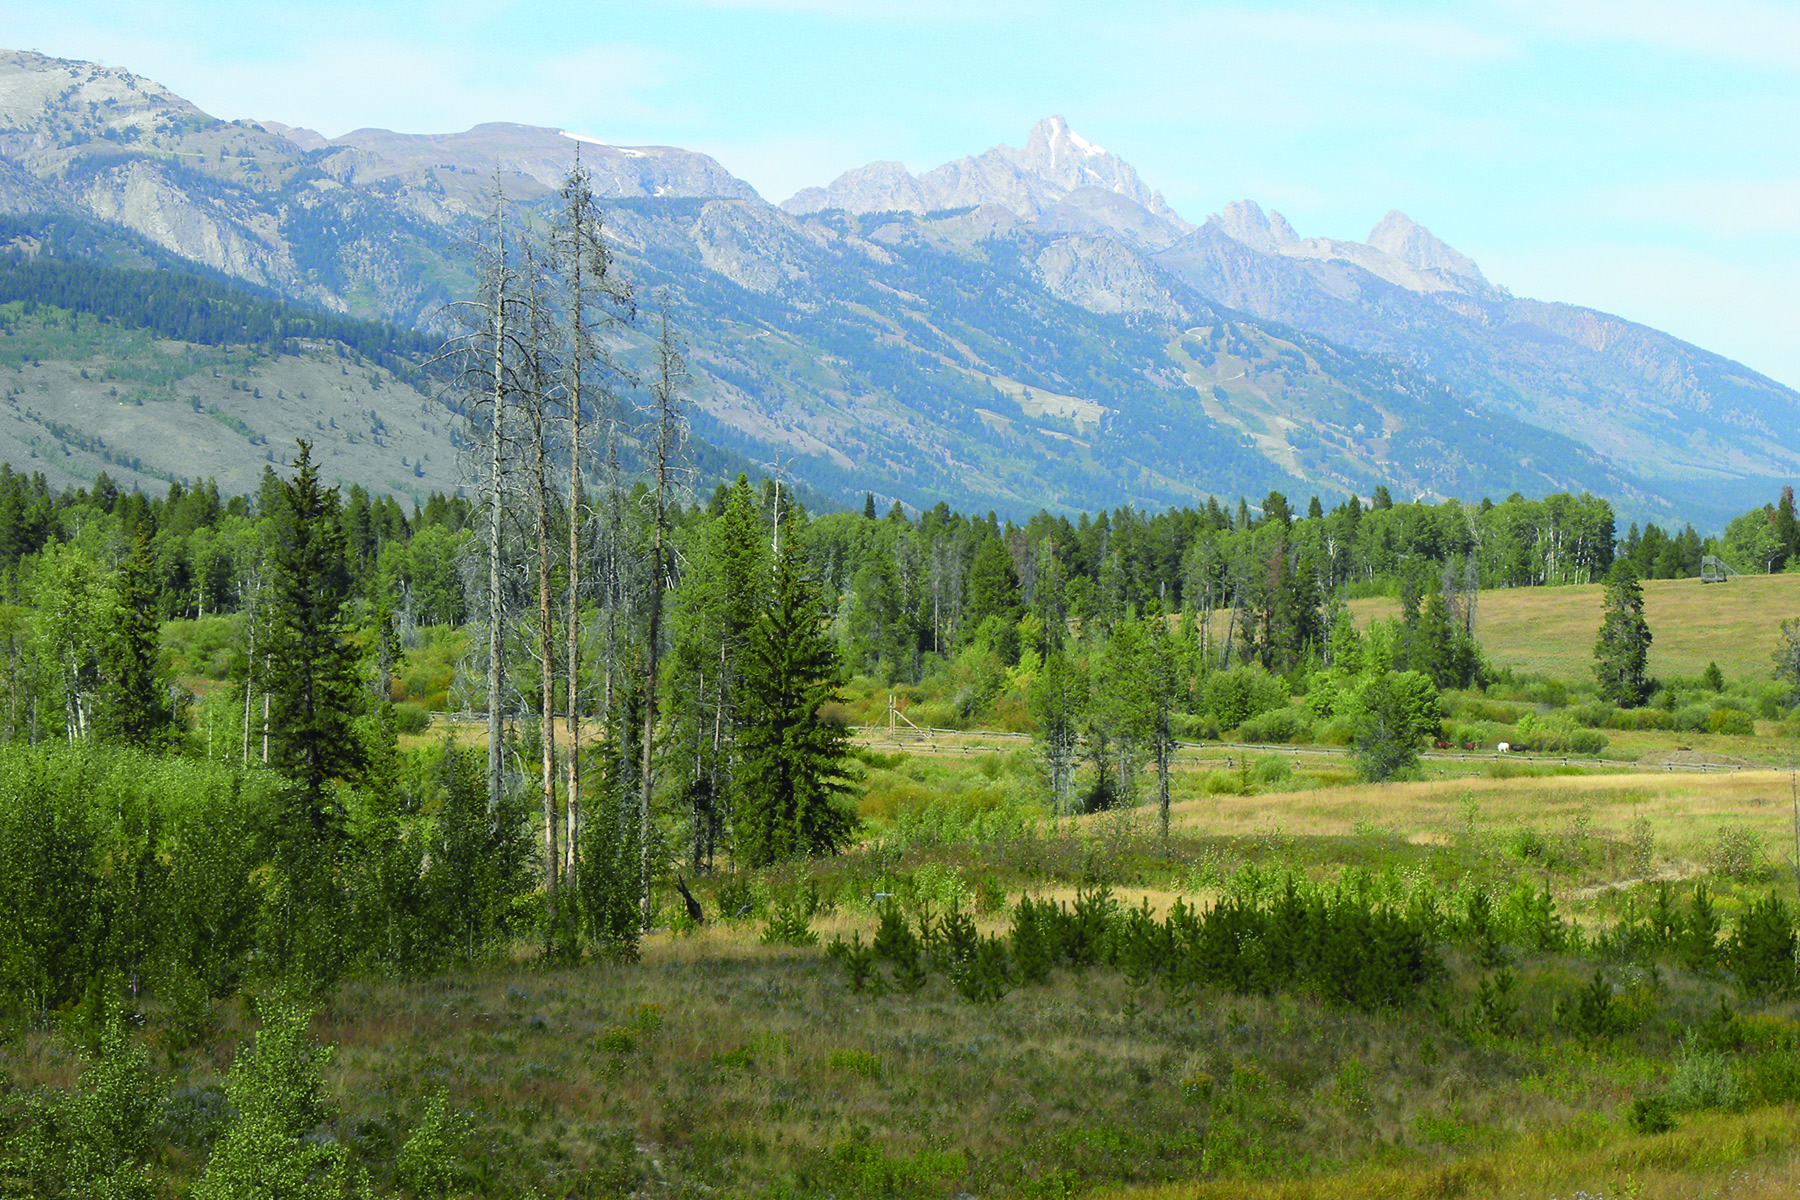 Land for Sale at Premier Ranch Lot in Crescent H Ranch 5990 West Salmonfly Dr West Bank South, Wyoming, 83014 Jackson Hole, United States